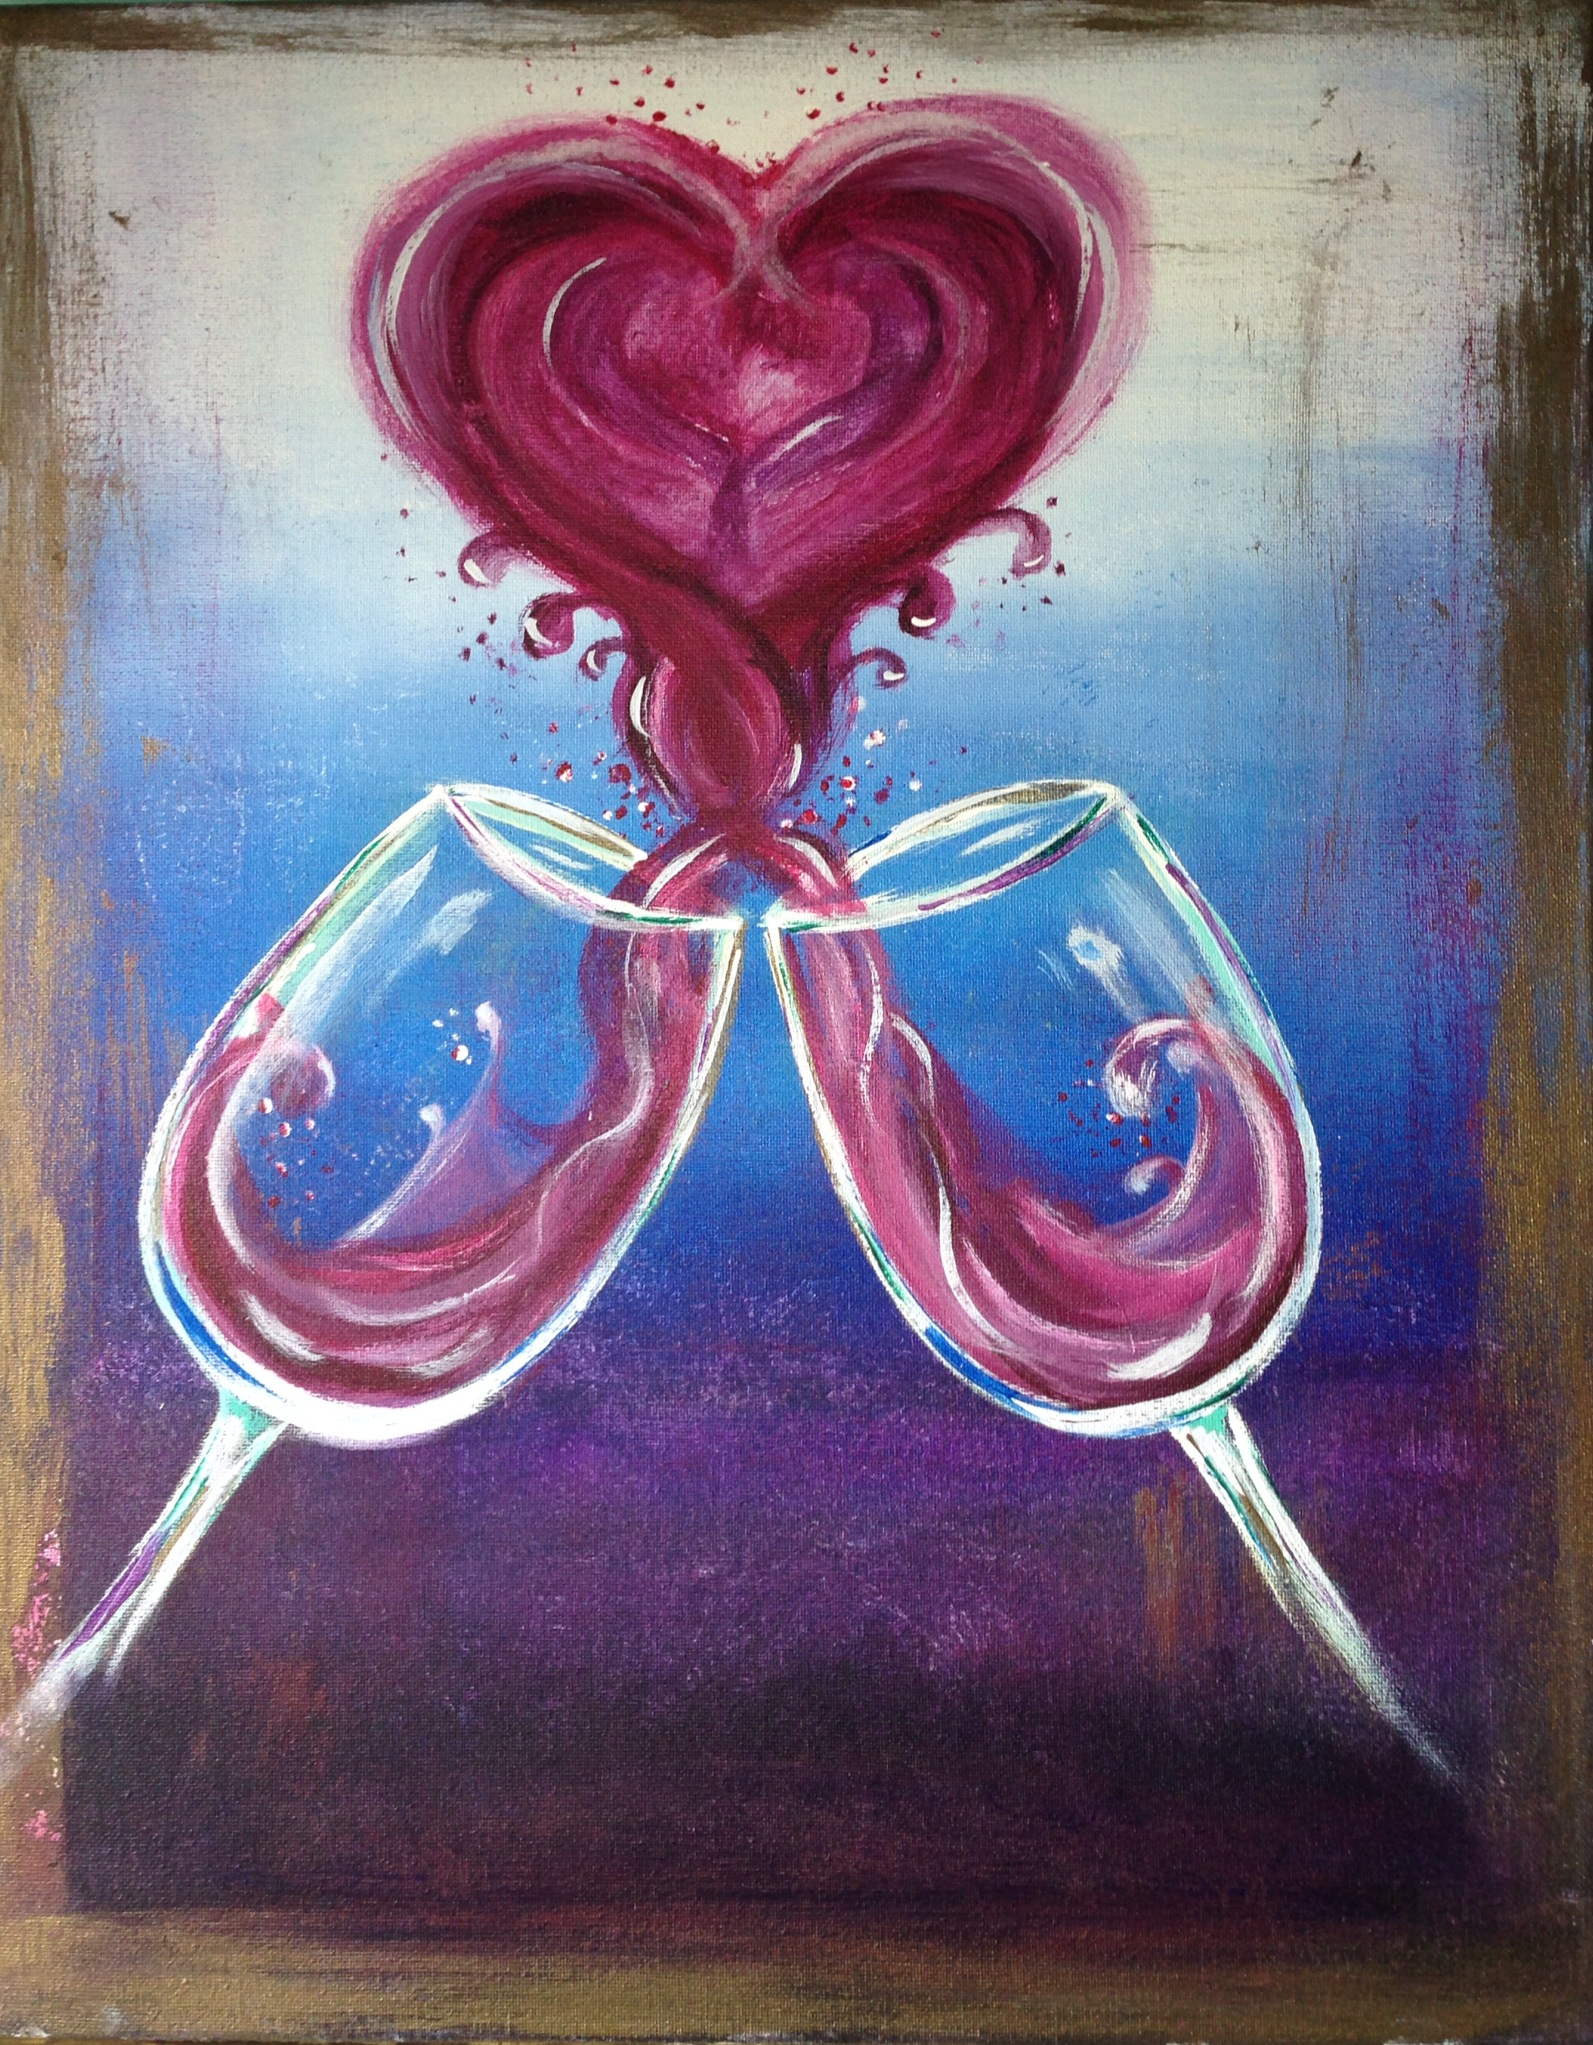 Splash pinot 39 s palette painting for Acrylic paint on wine glasses